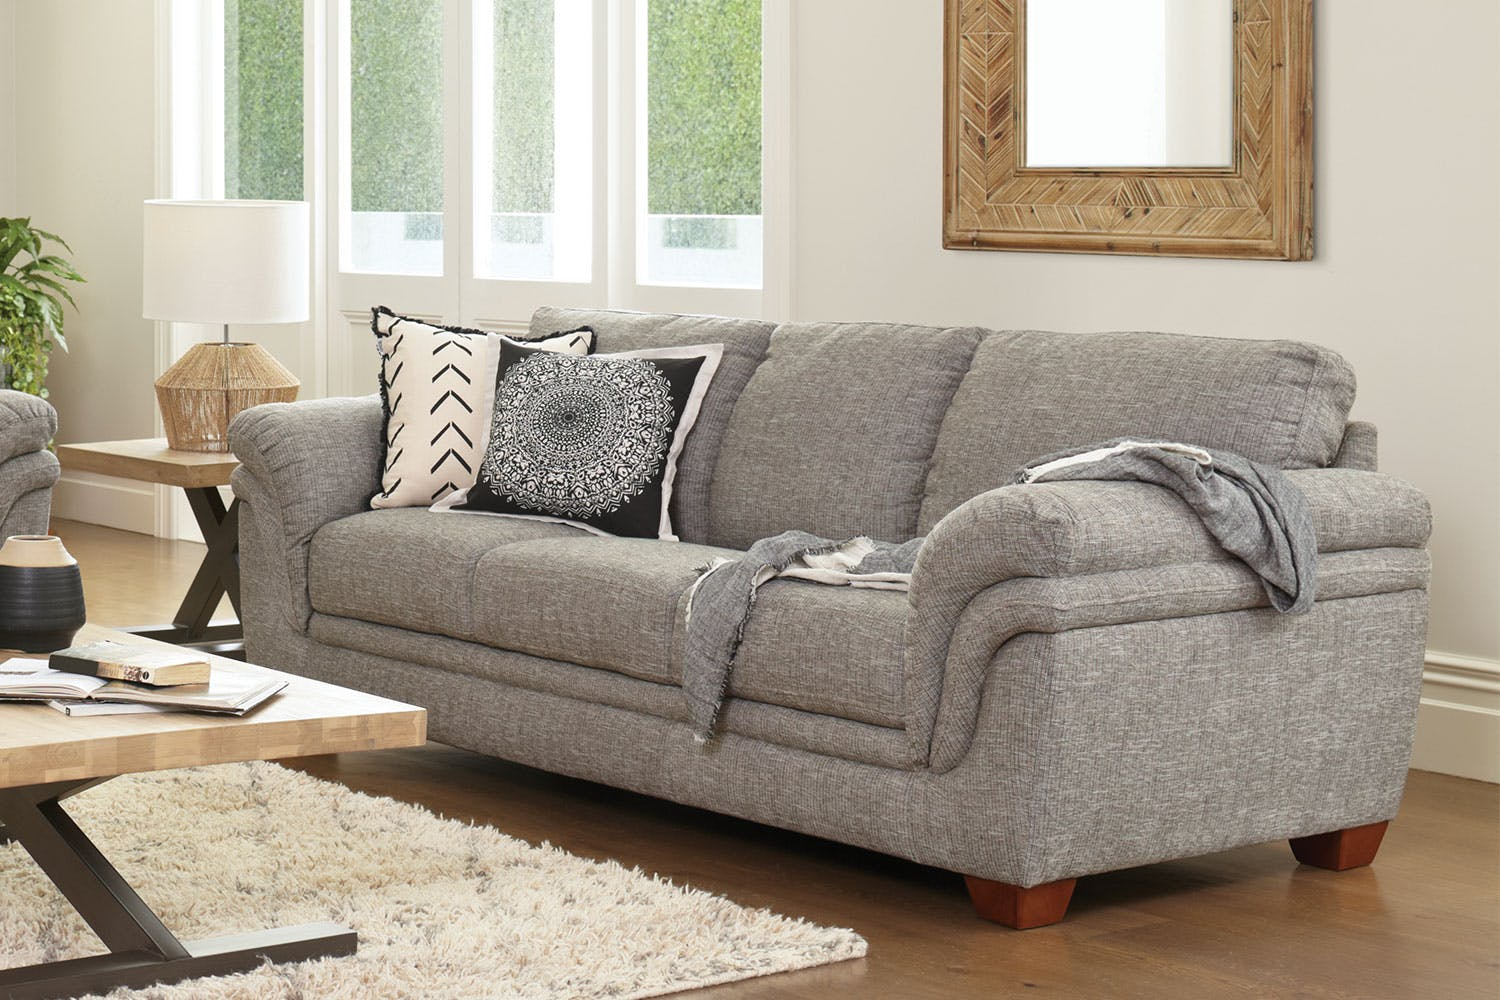 Check these Amazing Lazy Boy Demi Sofa Pictures - Icerunnerblog.com ...